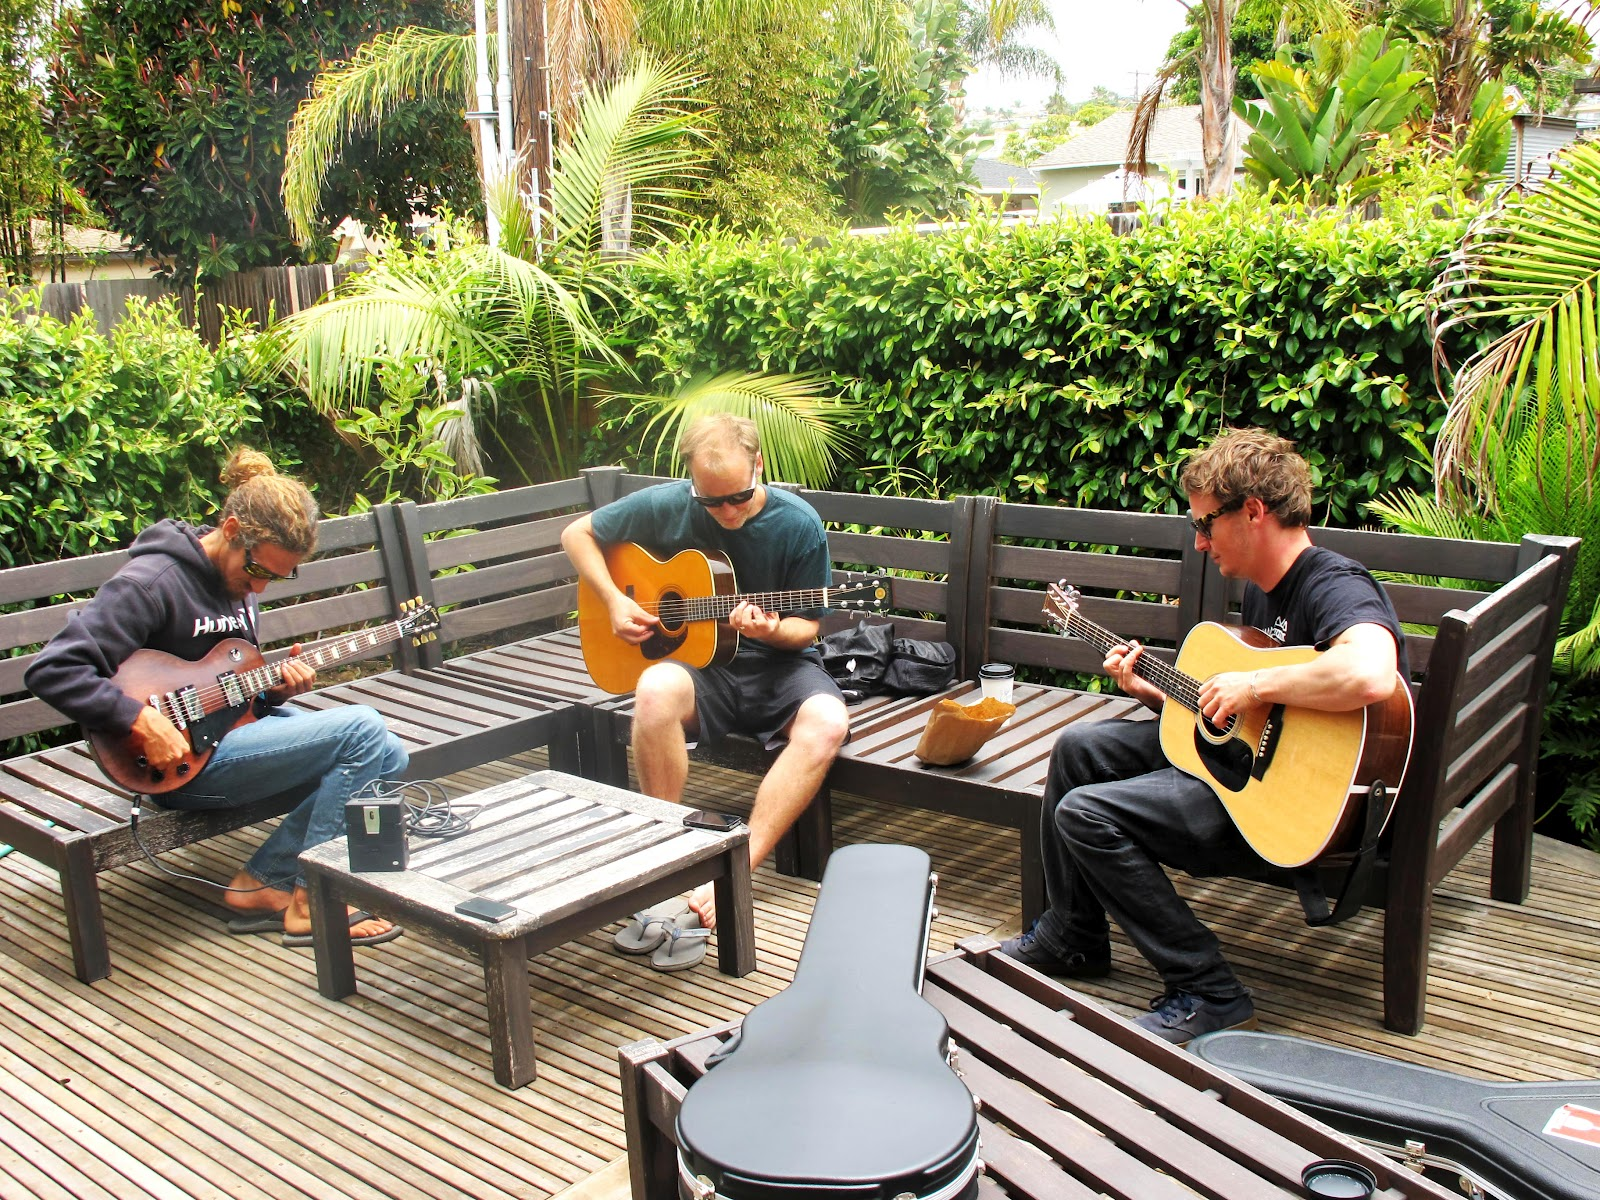 backyard bbq jams with ben howard and friends